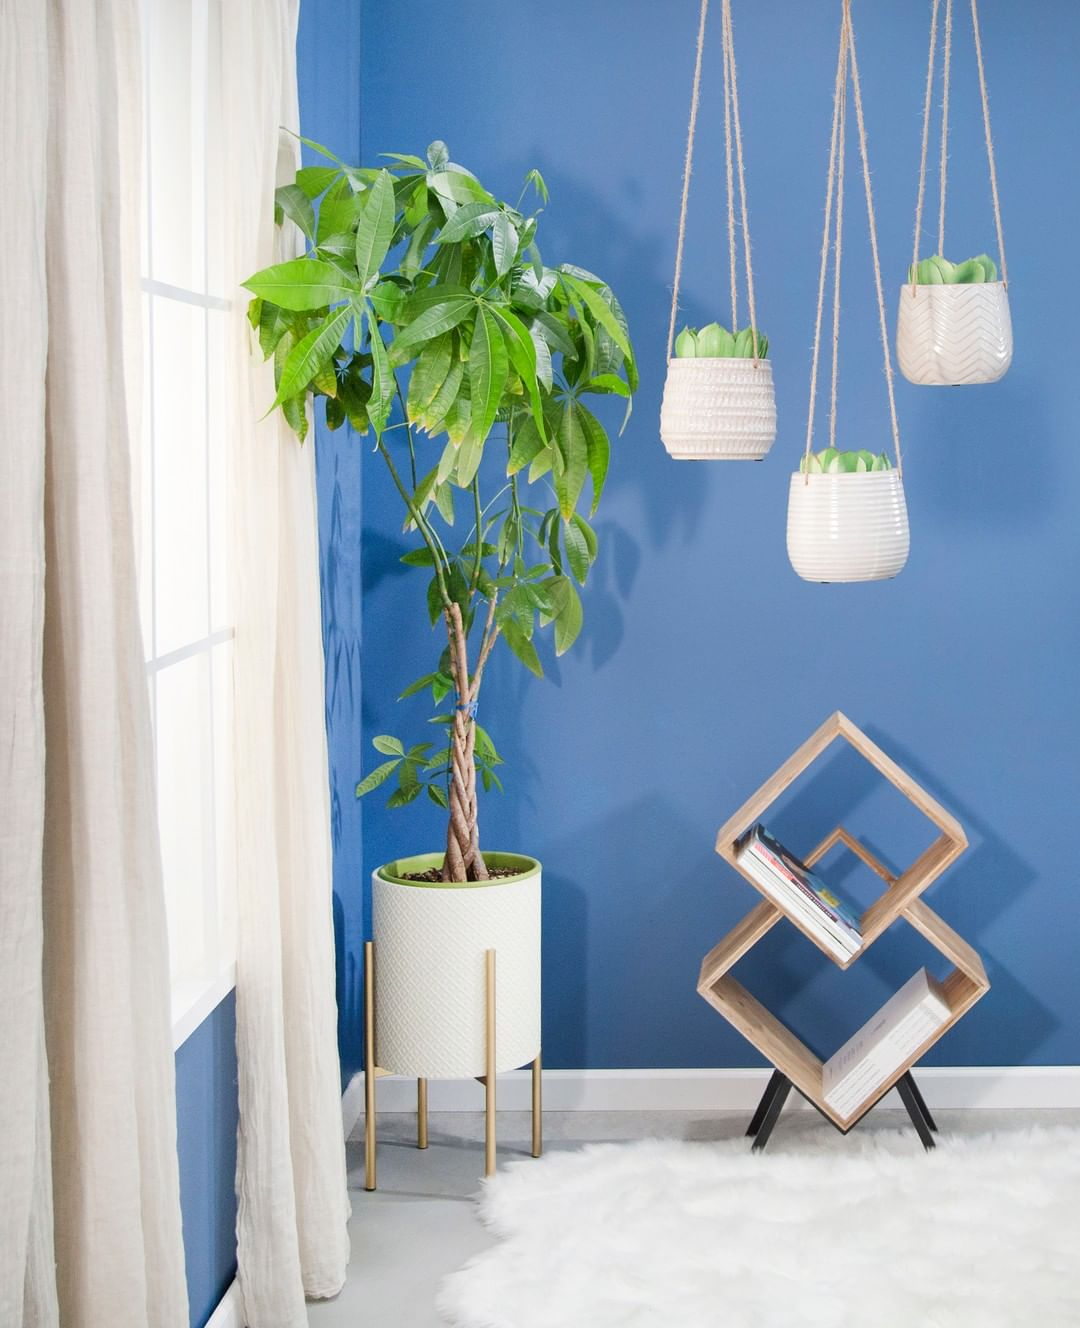 Reach New Heights In Your Decor With Han Homedecor - Home Accents